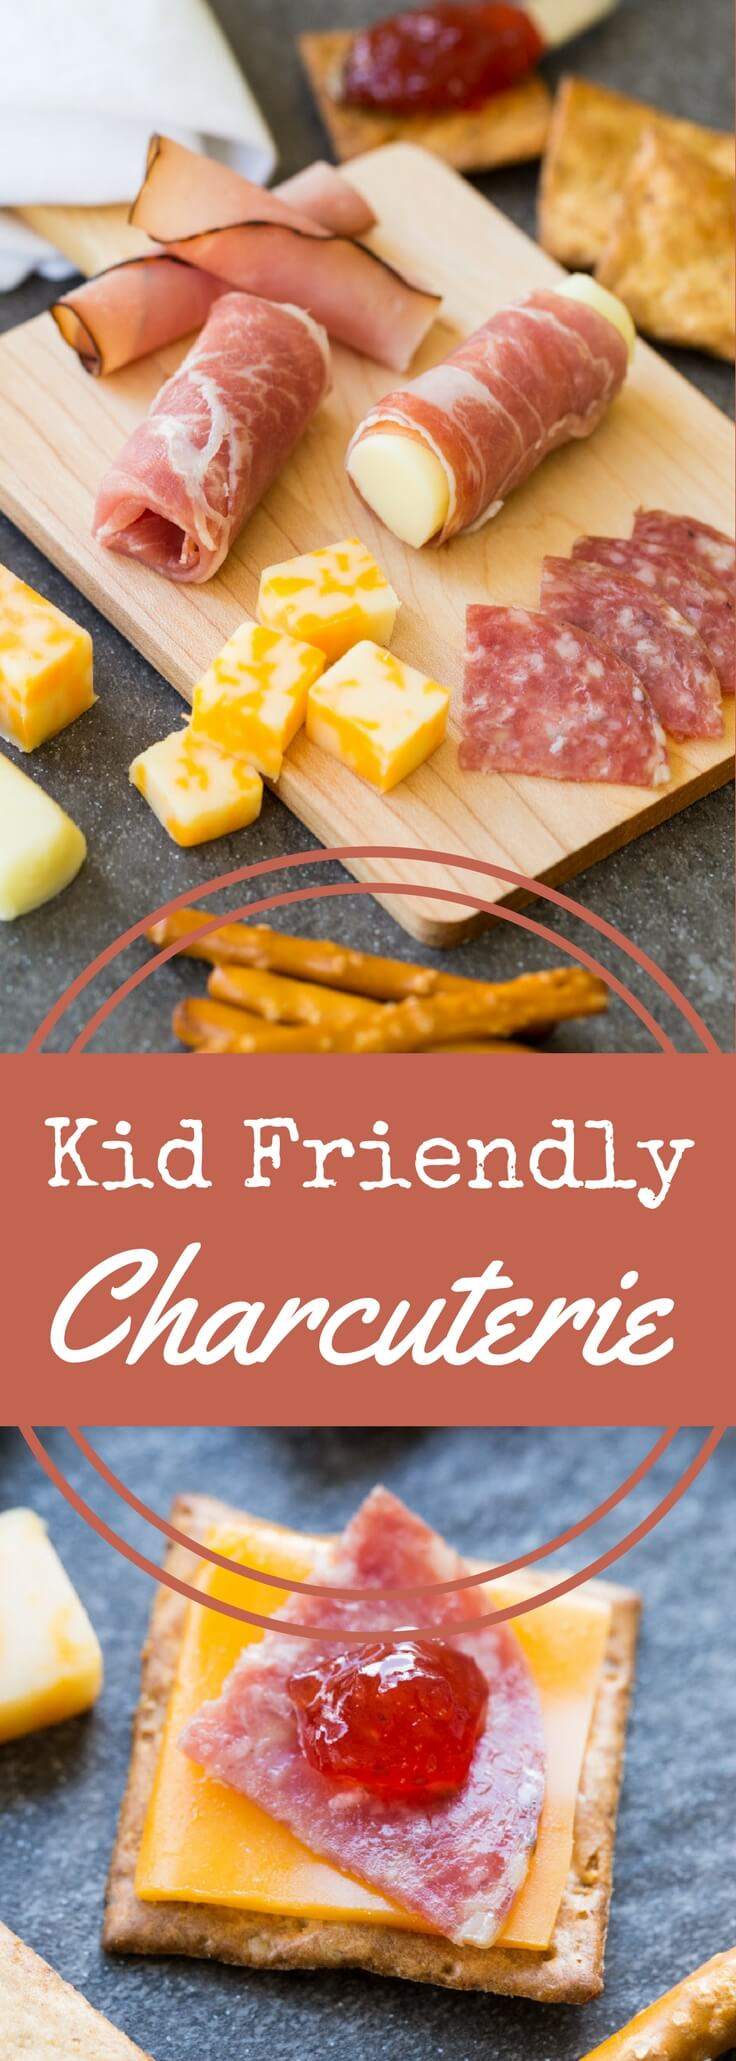 Pack a charcuterie plate in a lunch box with these kid-friendly options.  Pair meats, cheeses, spreads, and crackers for your little one to enjoy.